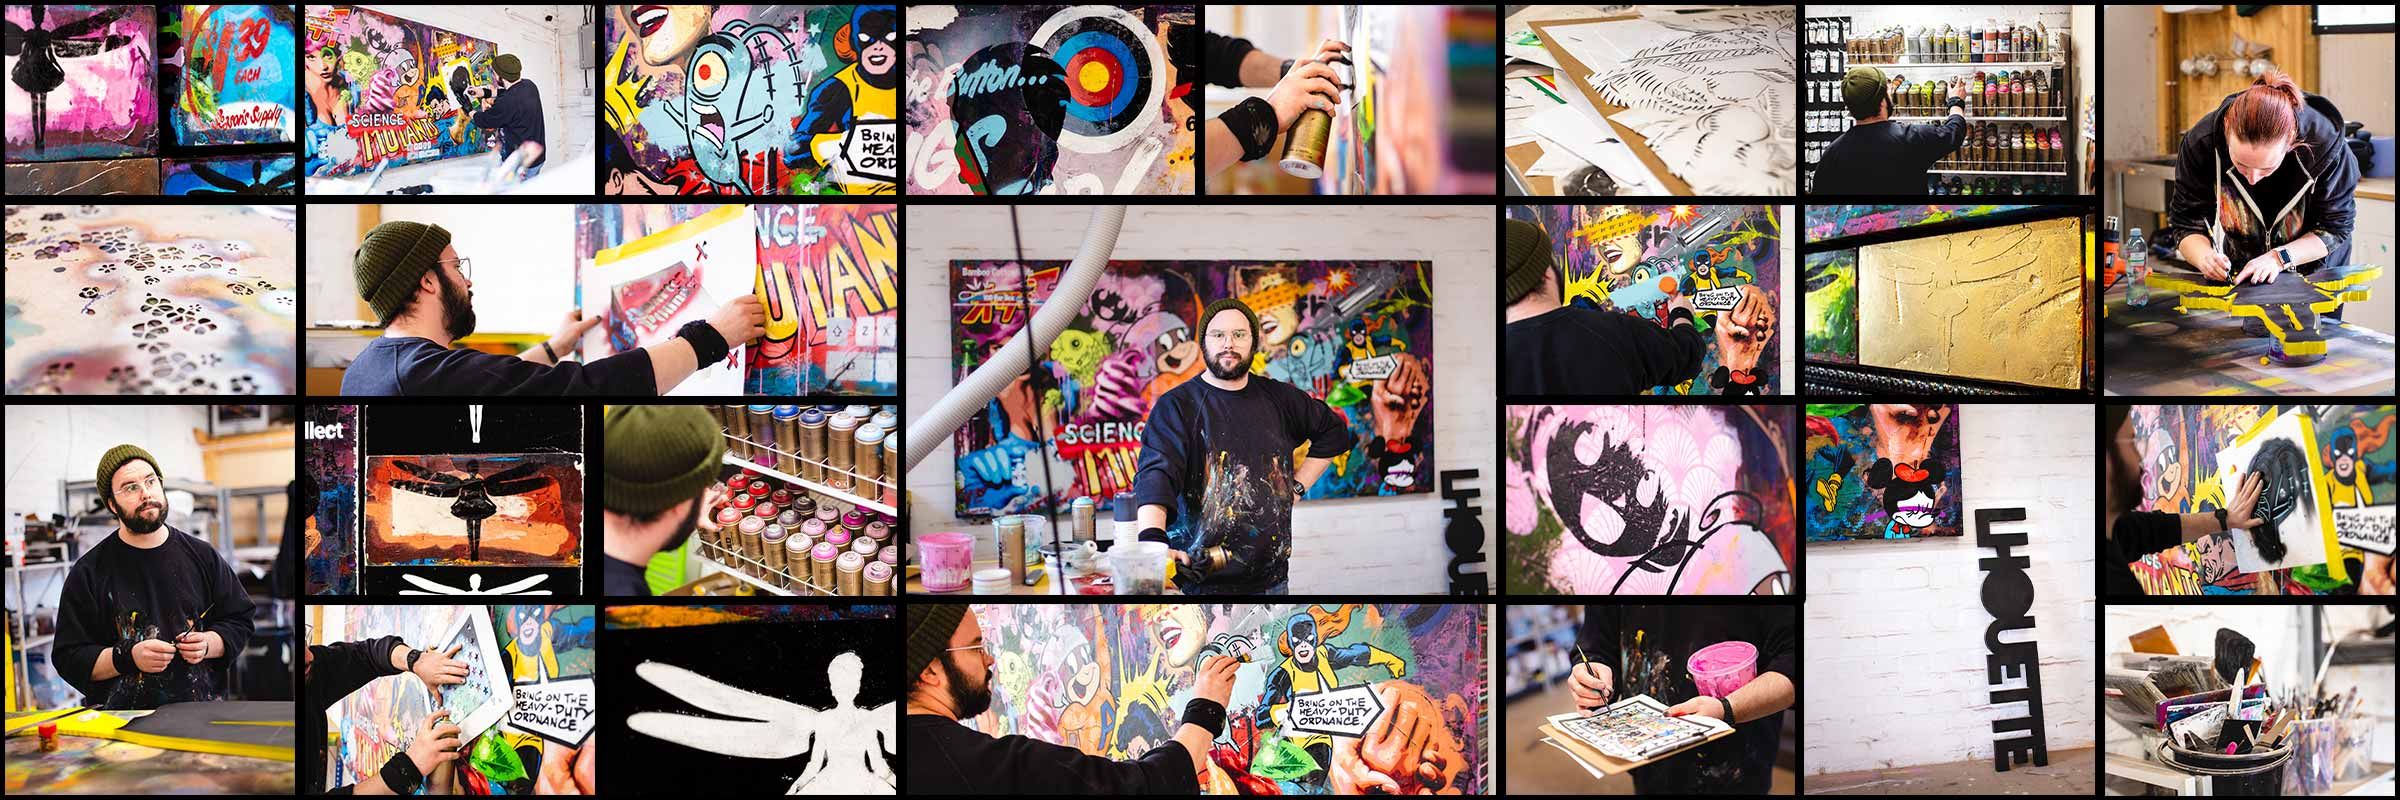 A collage of images from Lhouette's studio of him creating the Swarm Original artwork, along with detail shots of both the Edition and Original works.